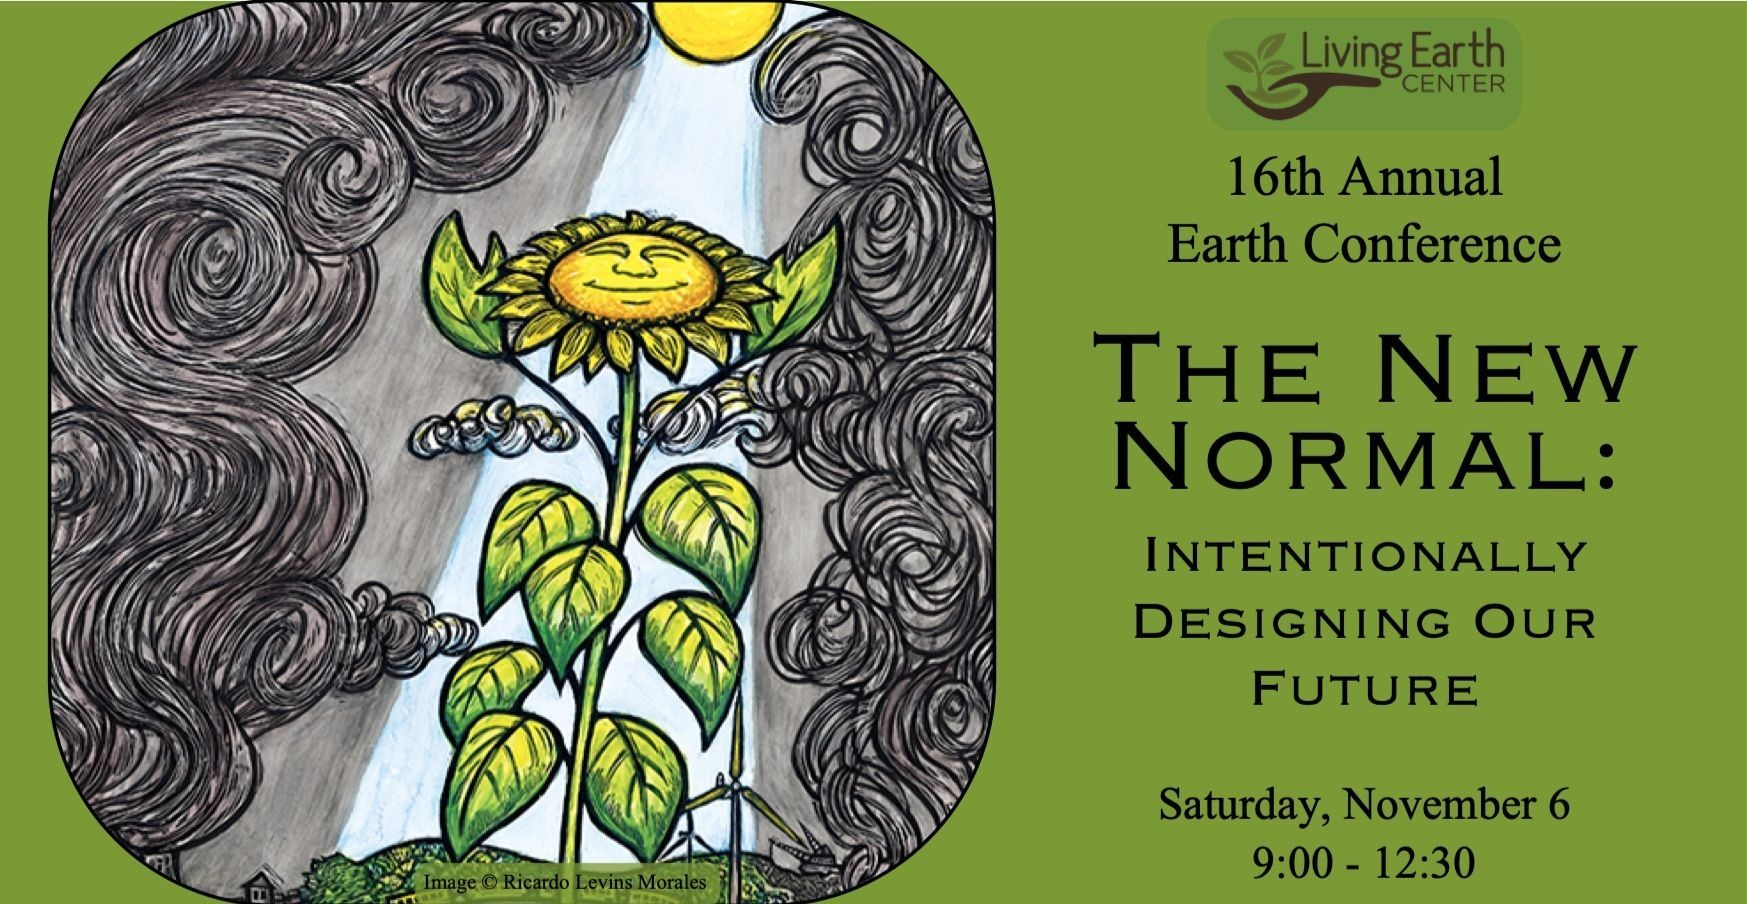 Save the Date - 16th Annual Earth Conference